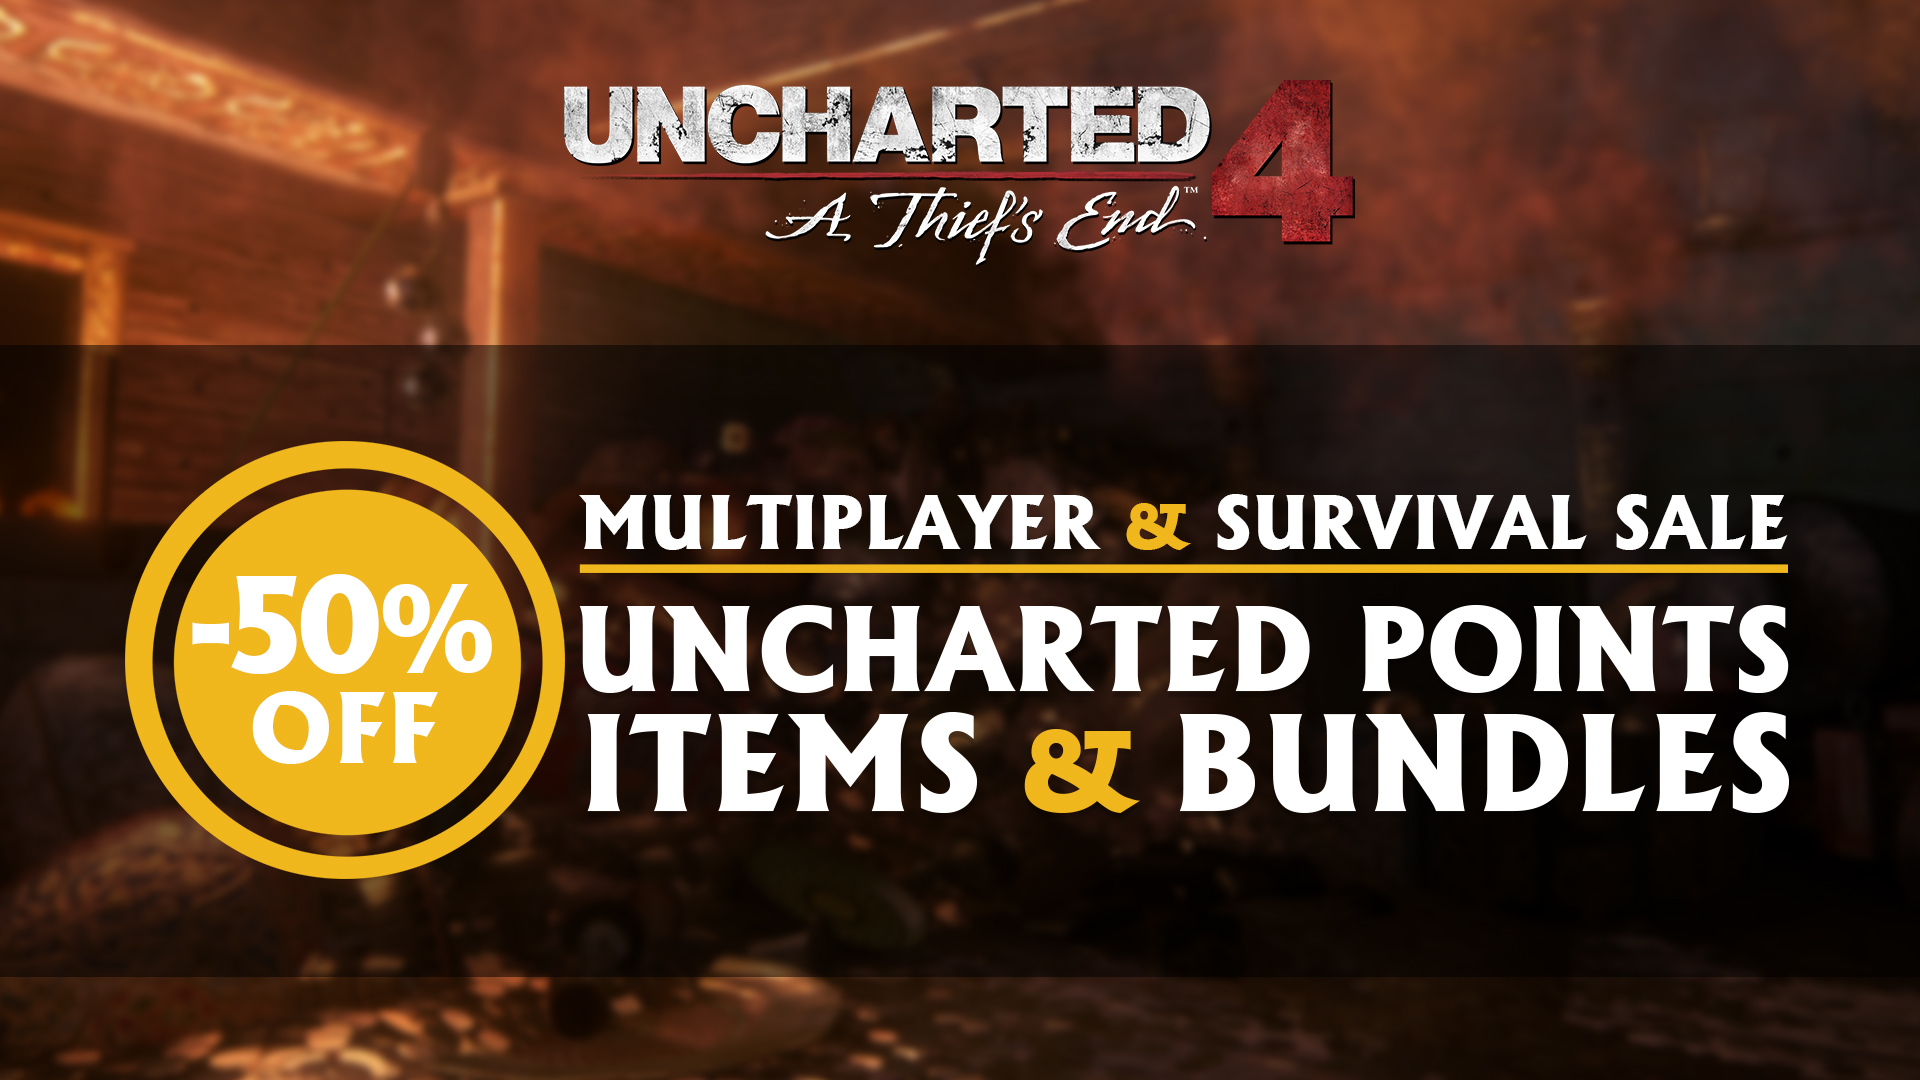 The Uncharted 4 Multiplayer Sale Starts Now!